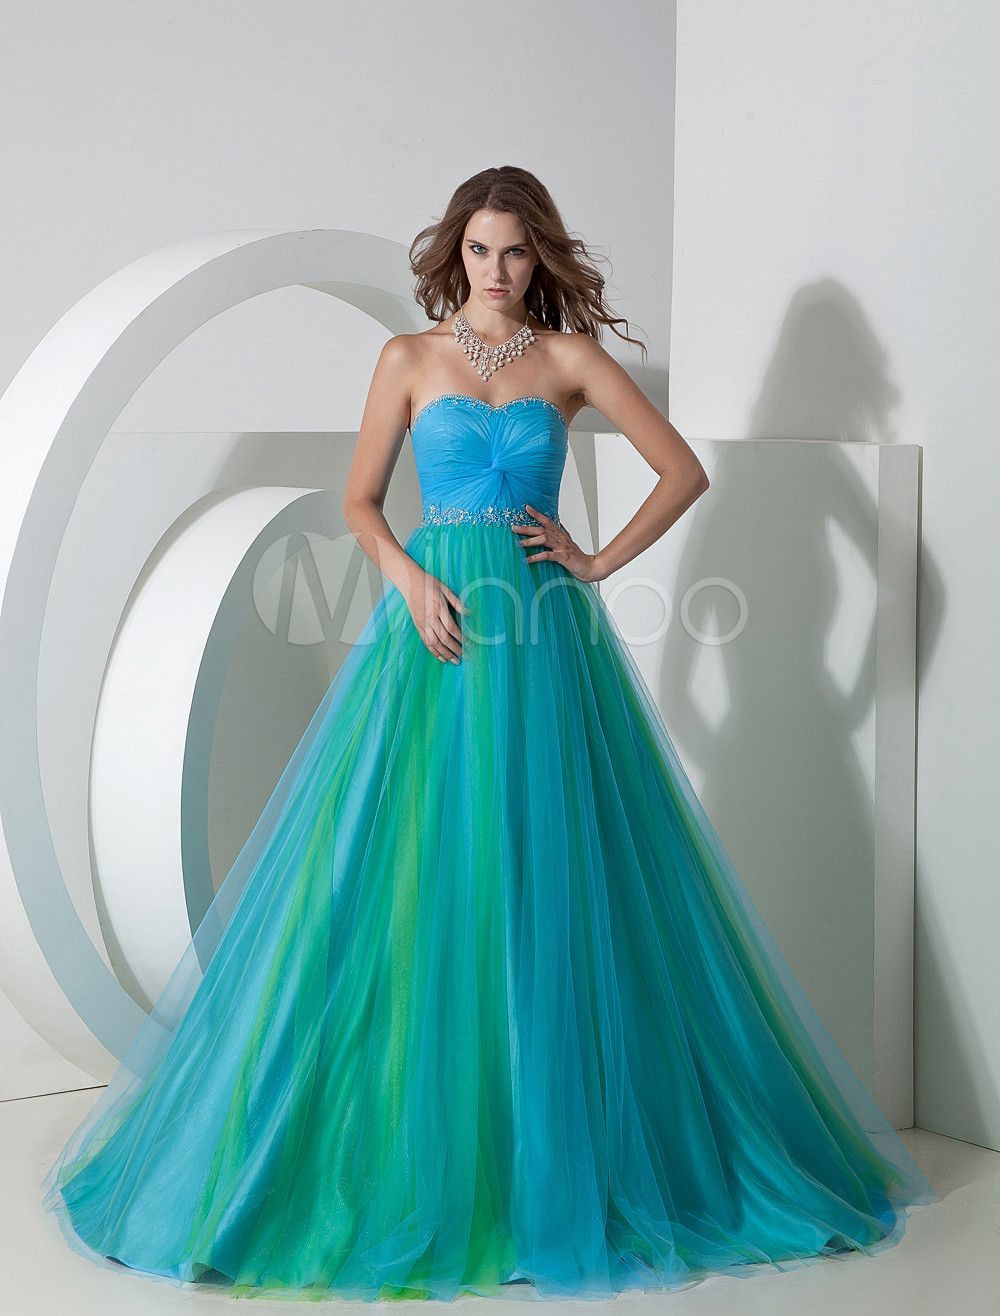 Twotone prom dress twisted ruched lace up tulle satin dress